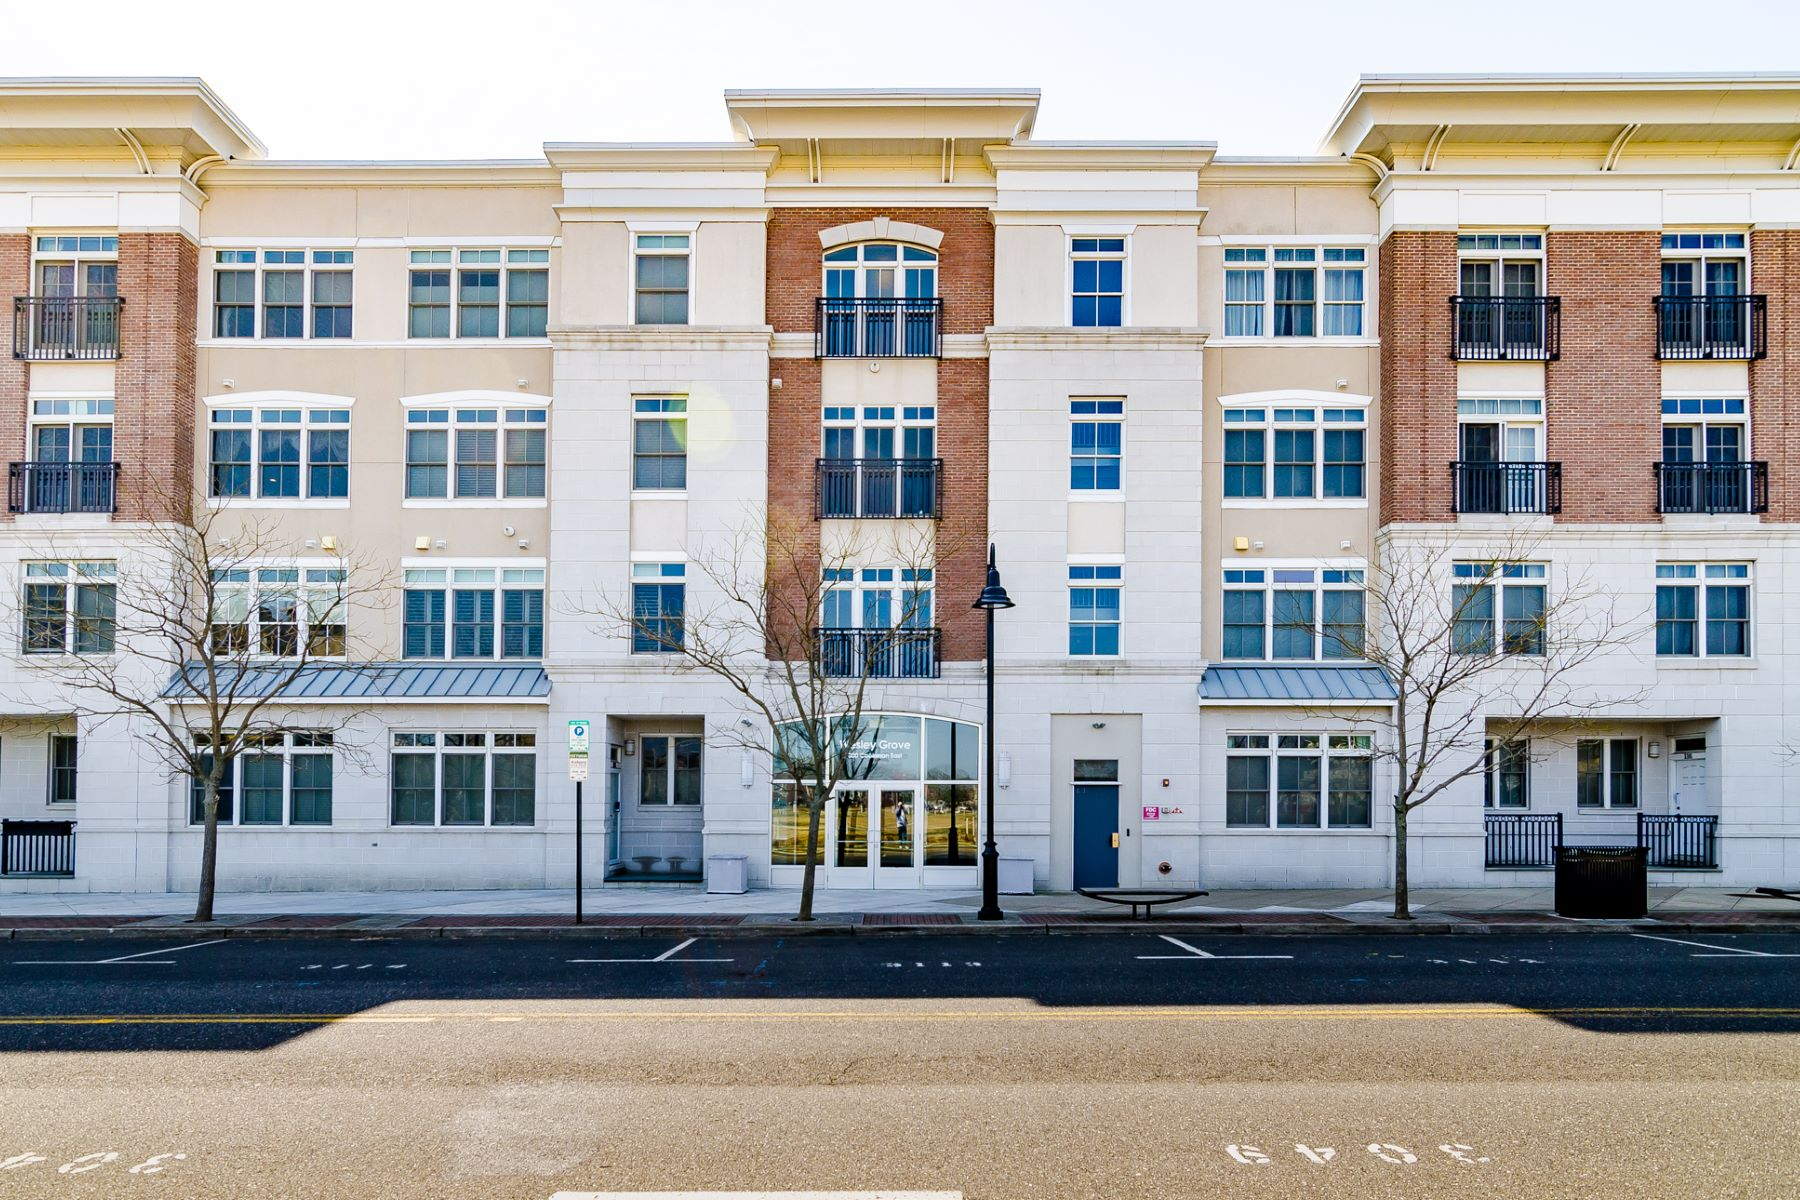 Condominium for Sale at Fabulous Two Story Duplex in the Wesley Grove 300 Cookman Avenue Unit 302 Asbury Park, New Jersey 07712 United StatesIn/Around: Asbury Park